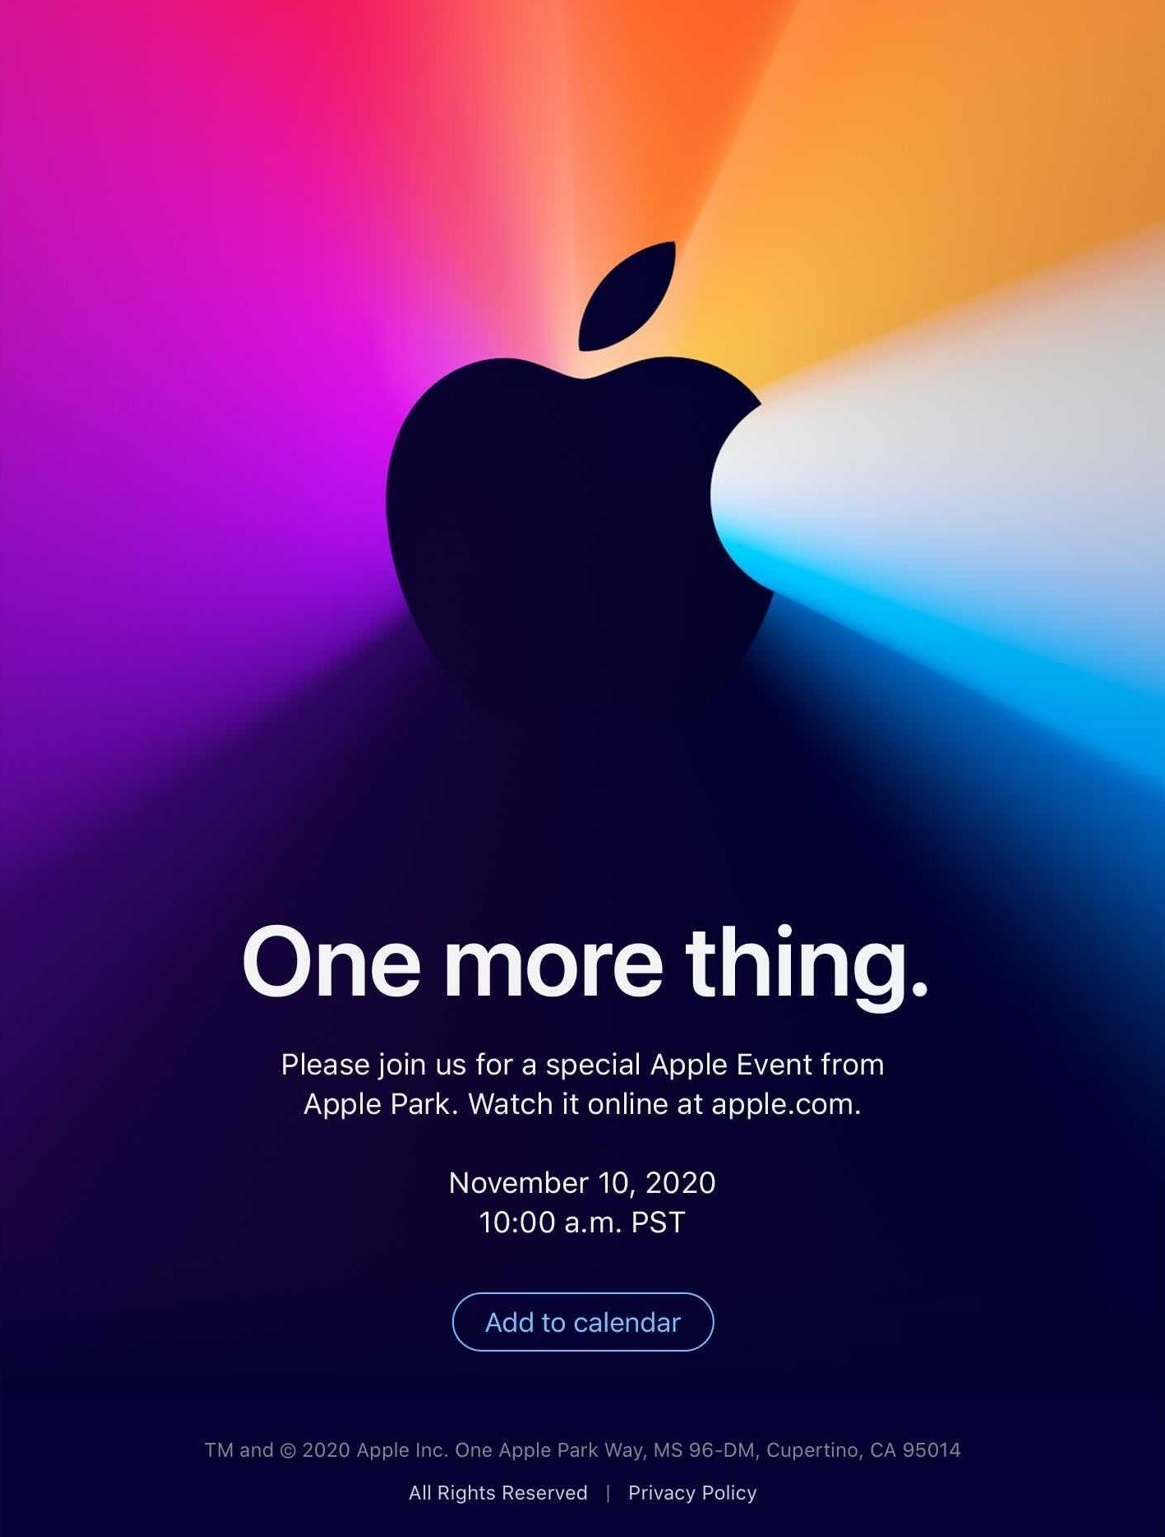 Apple-One-More-Thing-Invite